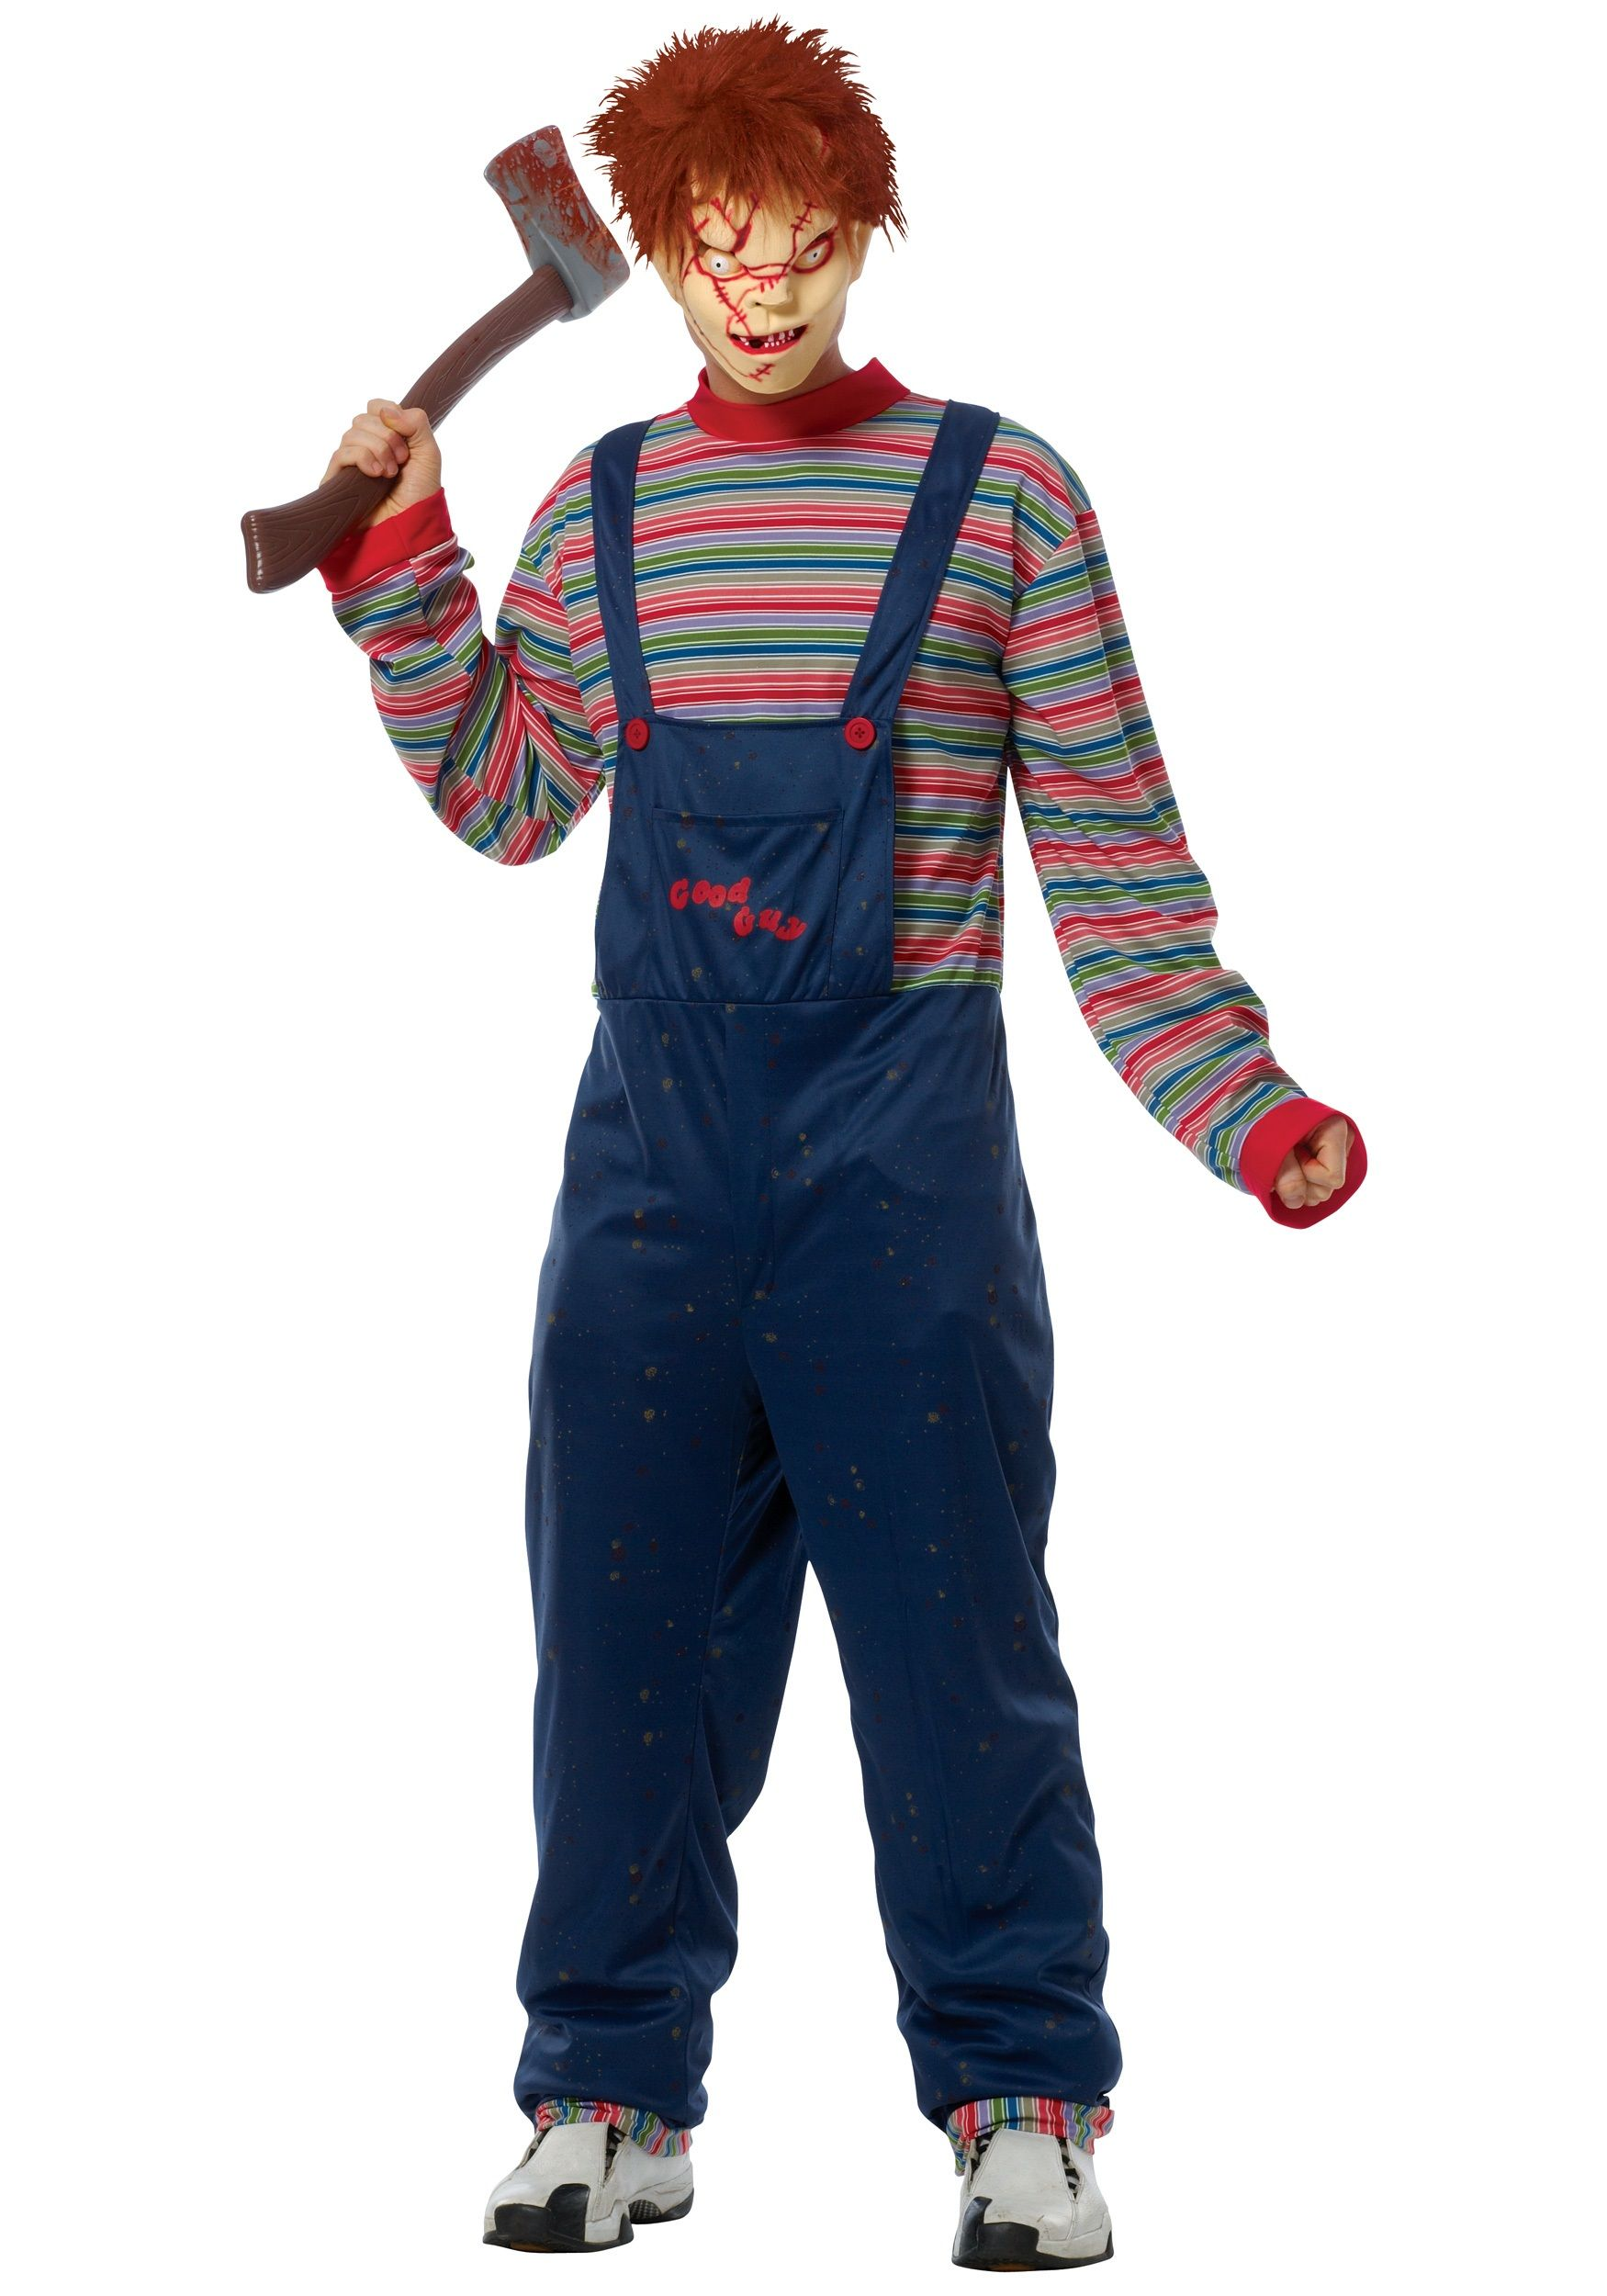 Adult Chucky Costume | Chucky costume, Halloween costumes and Costumes